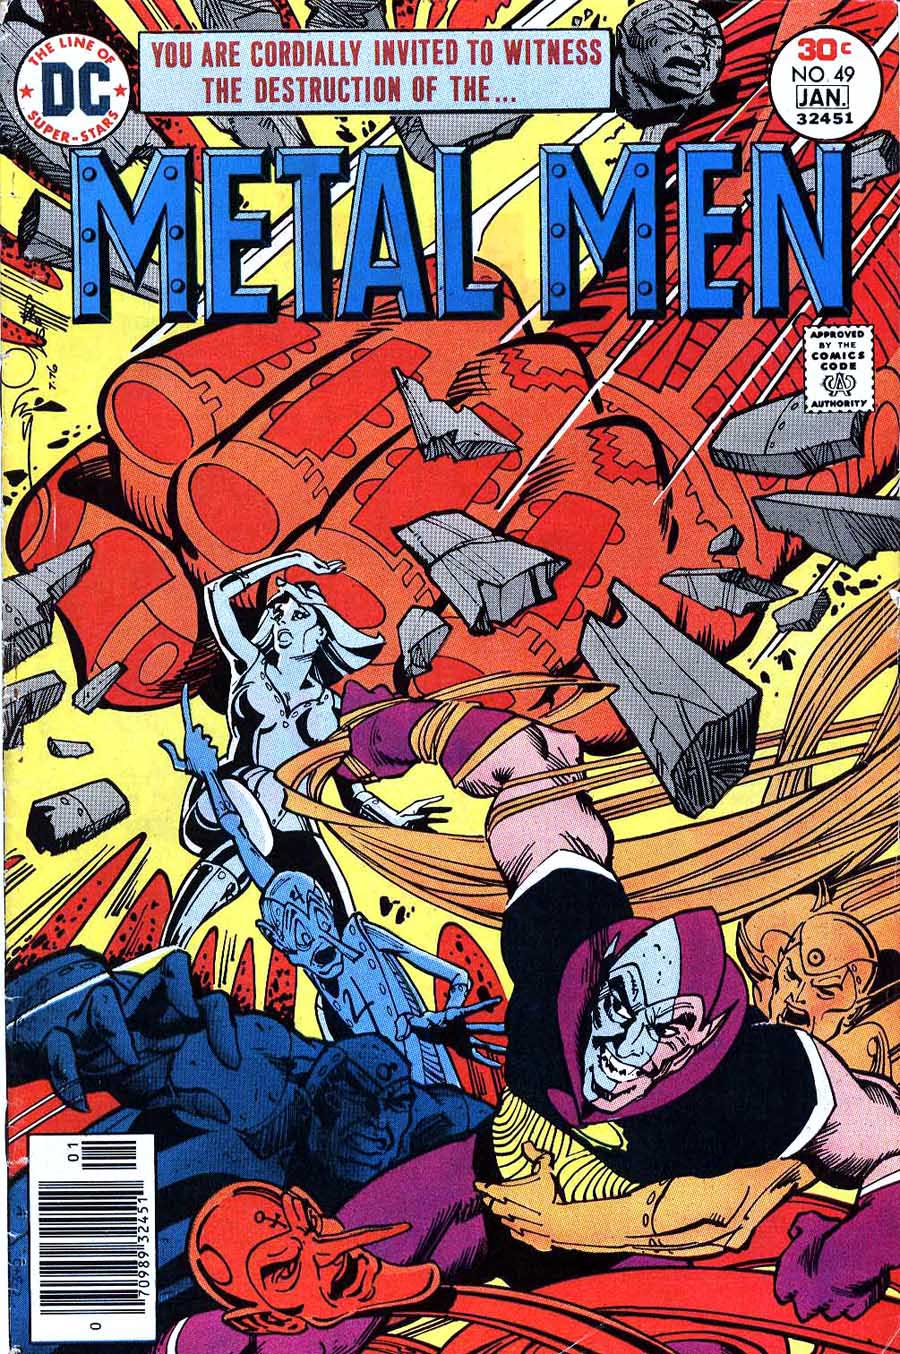 Metal Men v1 #49 dc 1970s bronze age comic book cover art by Walt Simonson